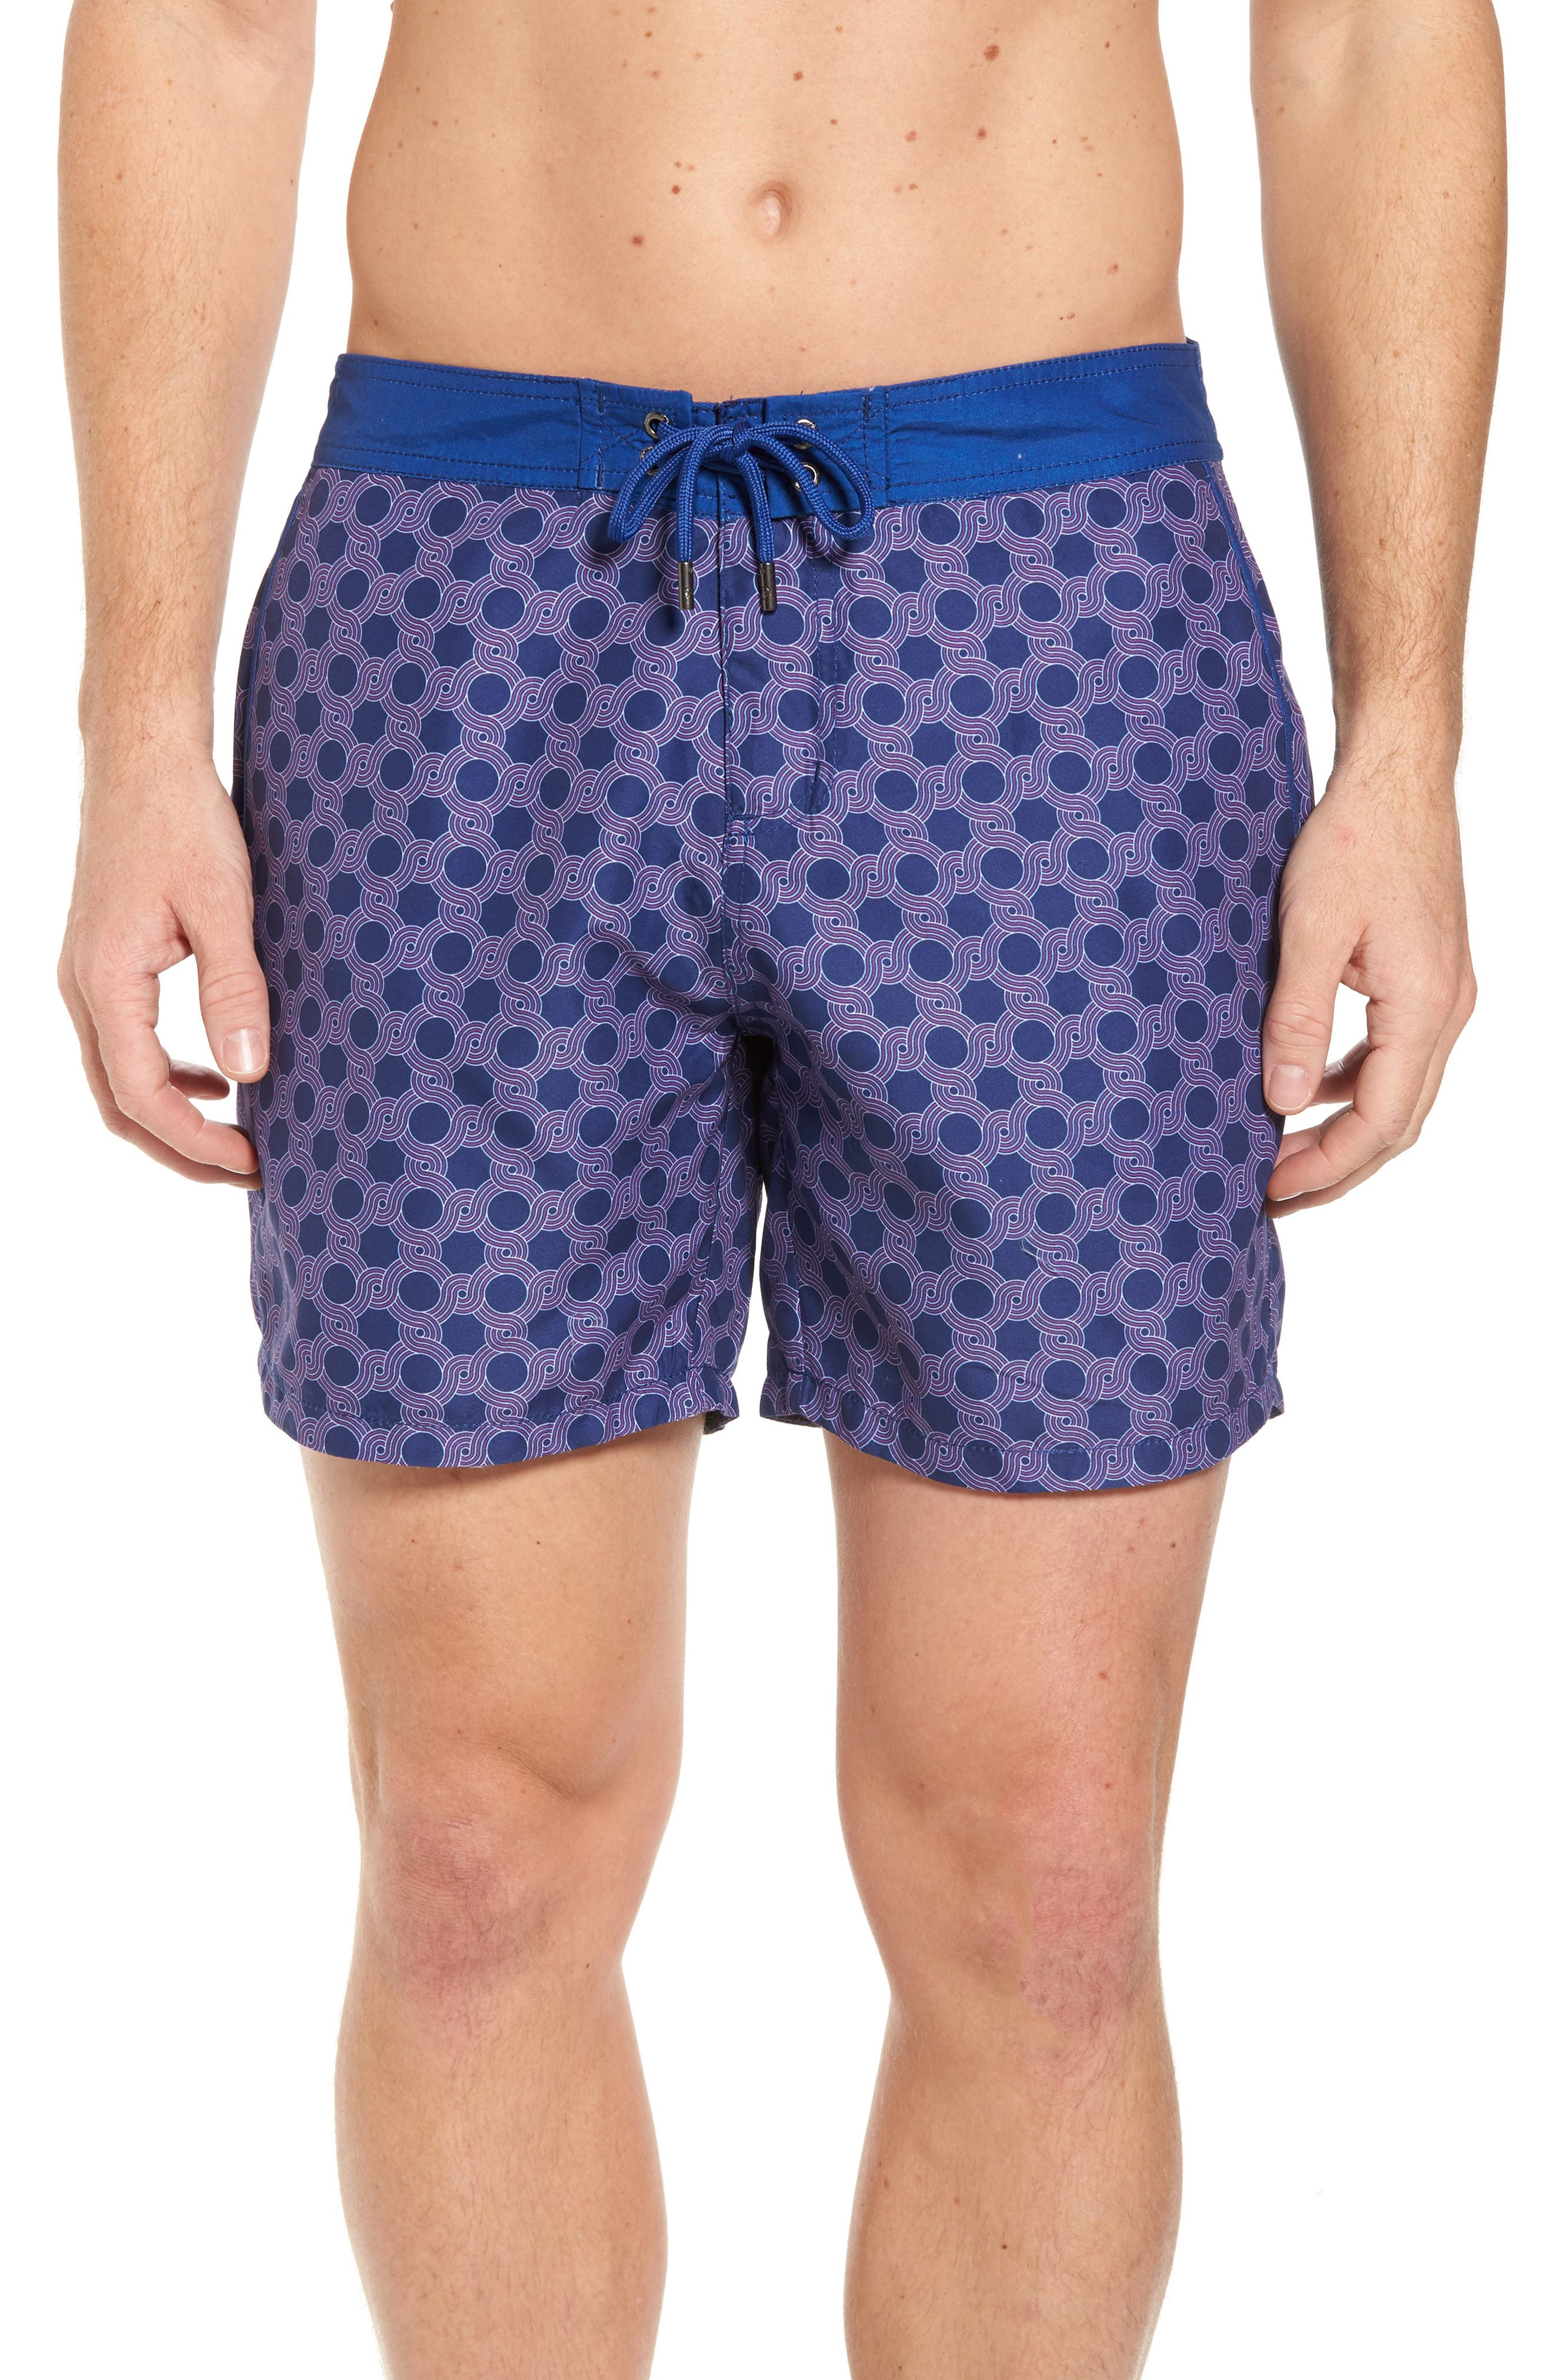 Mr. Swim Figure Eight Print Swim Trunks,                         Main,                         color, NAVY